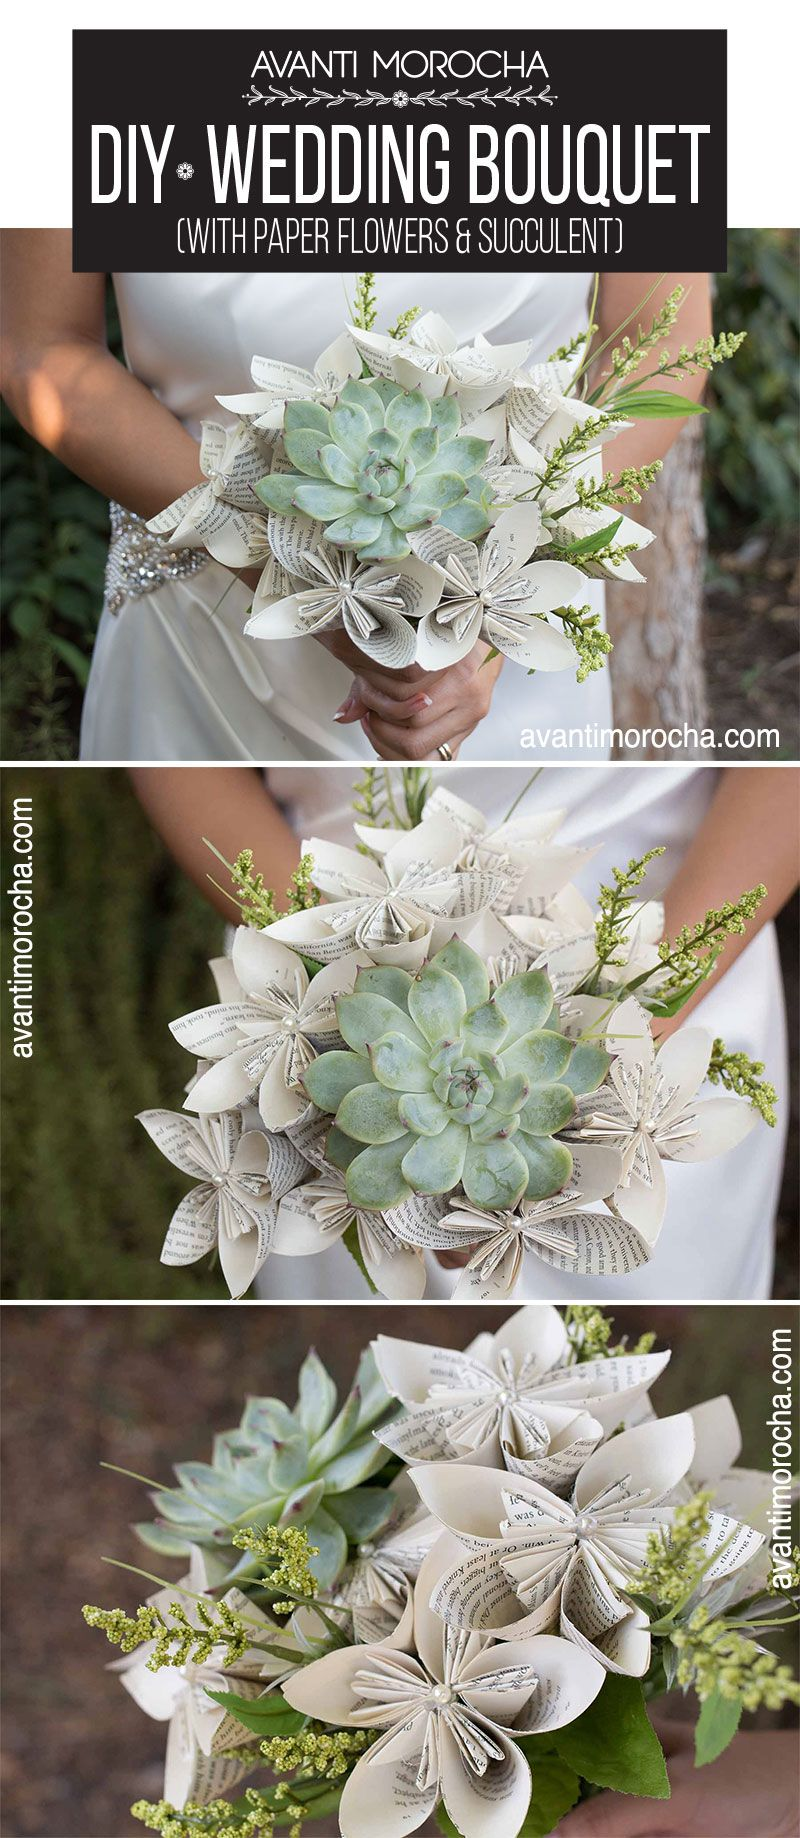 DIY Wedding Bouquet with Paper Flowers and Succulent Diy